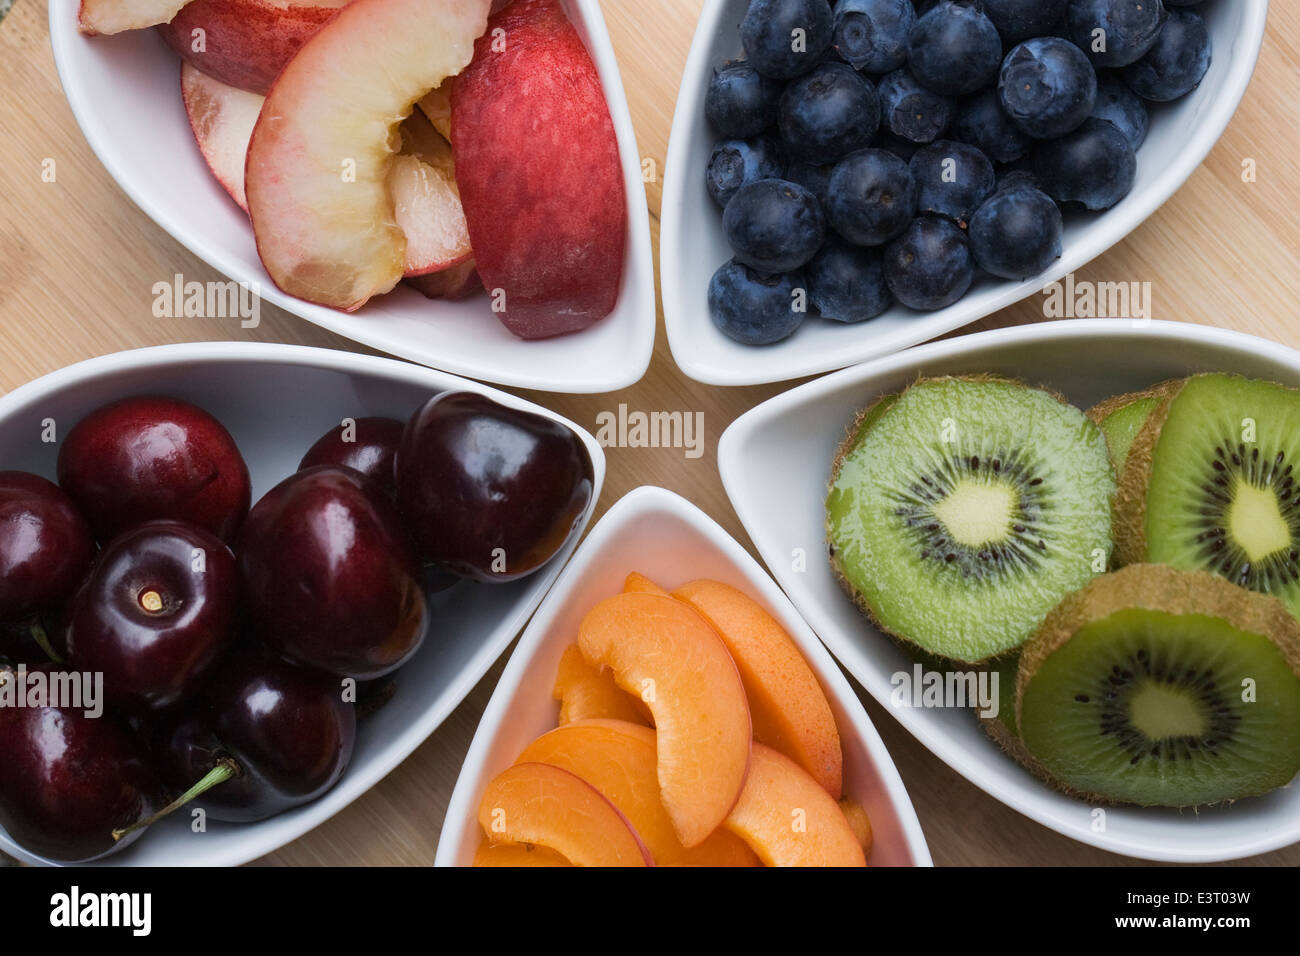 Healthy snacks including apricots, nectarines, cherries, blueberries and kiwi fruit. - Stock Image